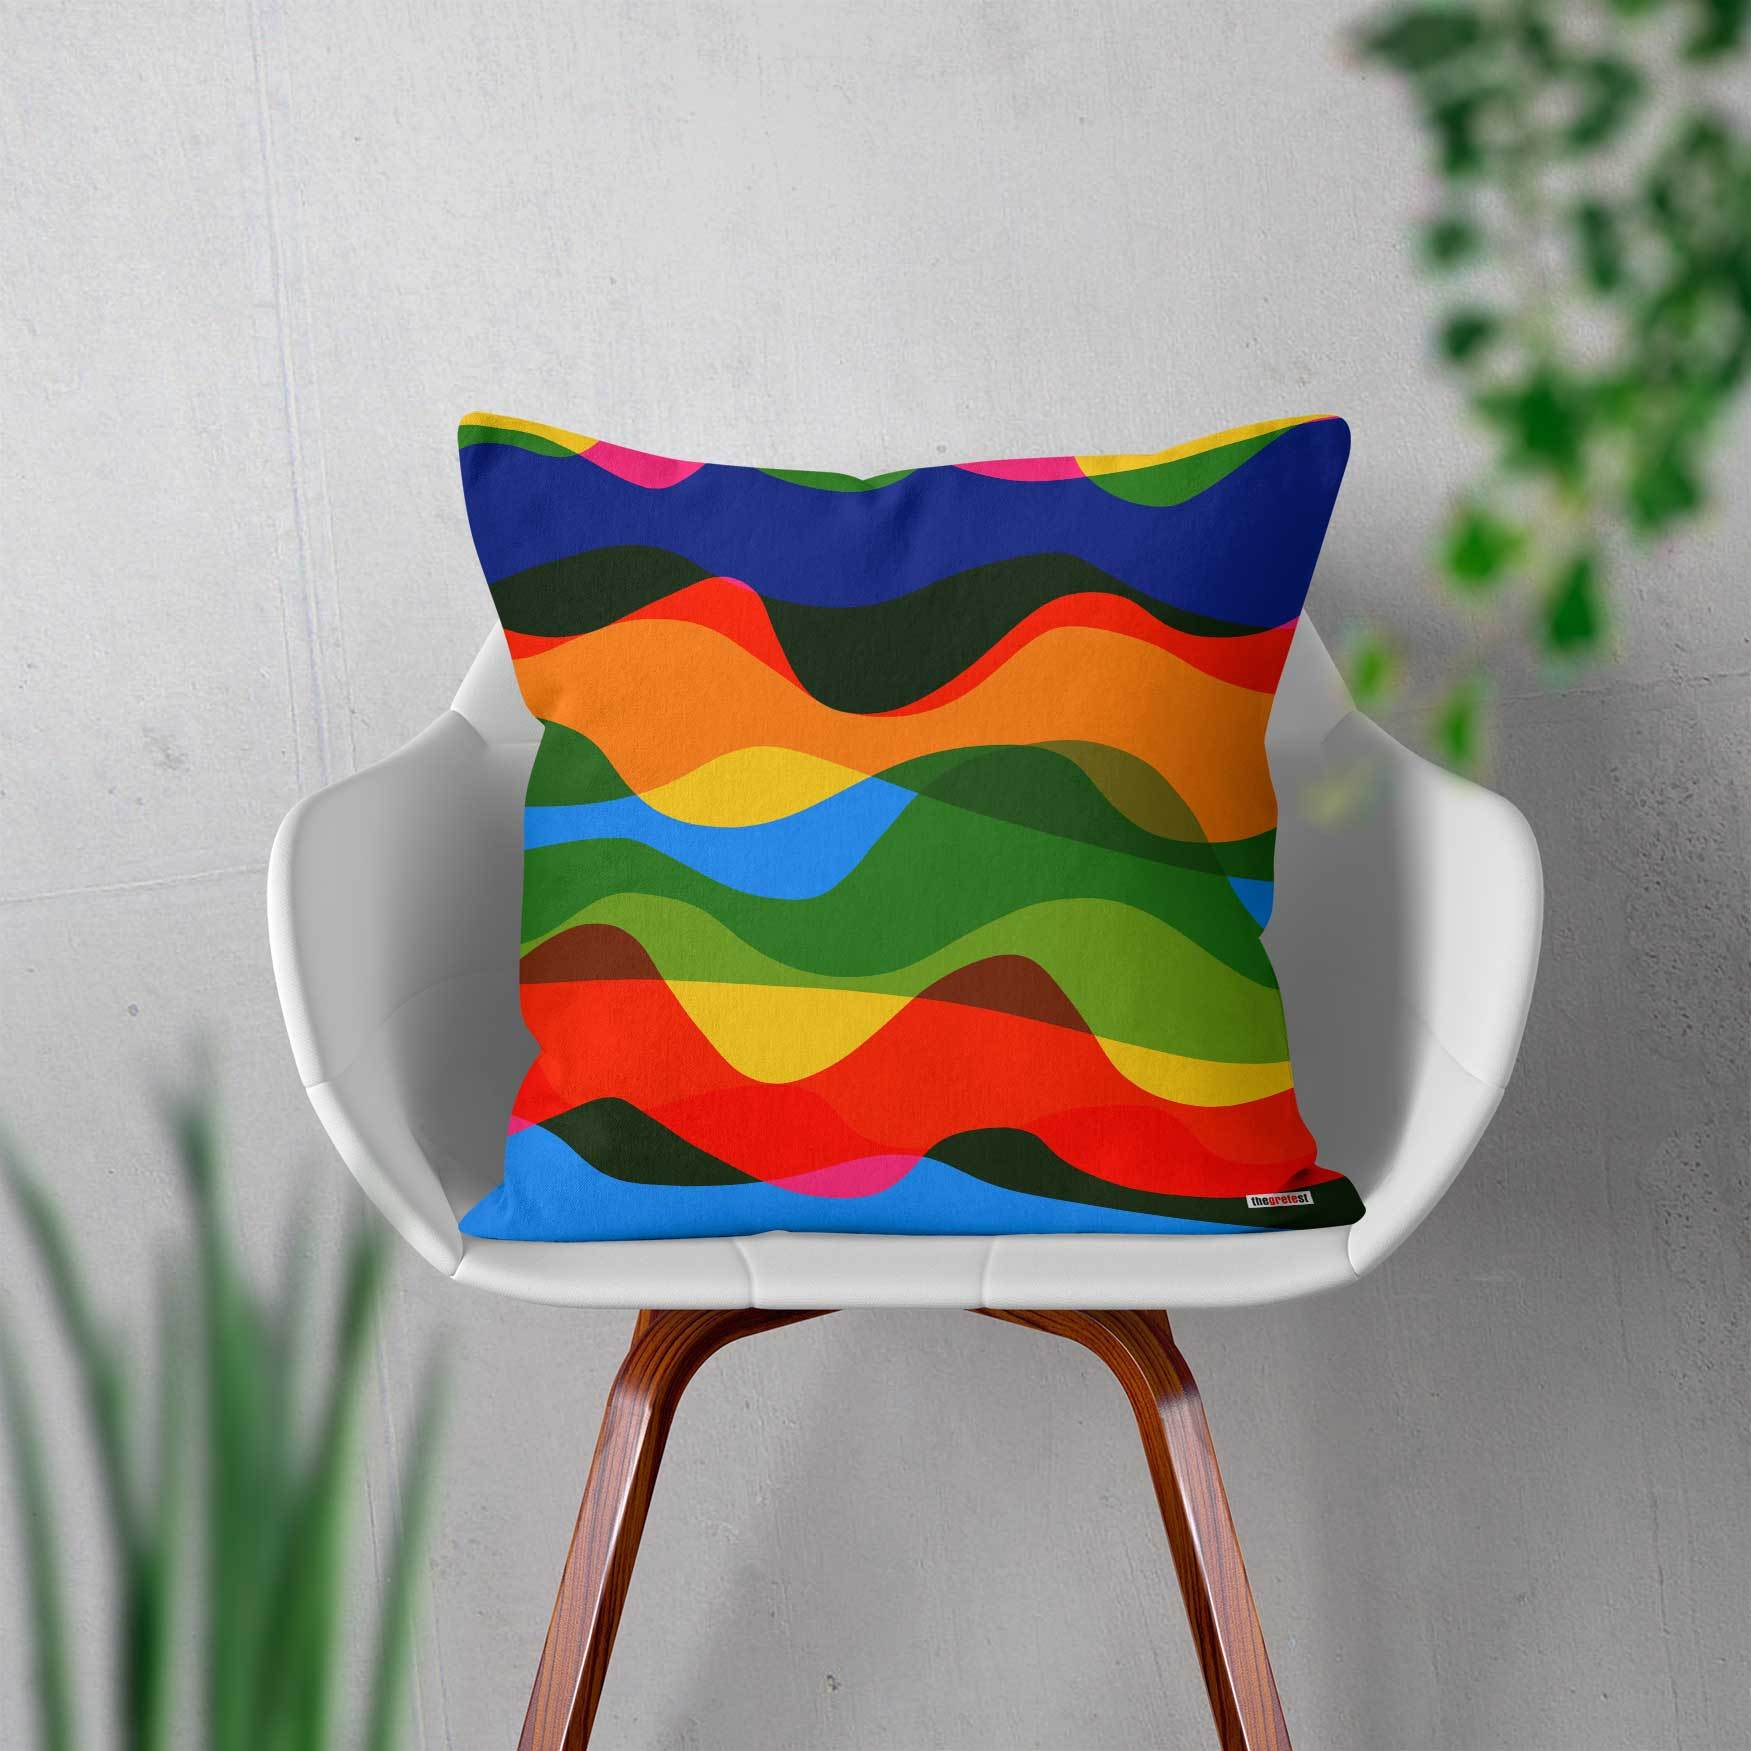 Decorative Pillow - Designer pillow by The Gretest